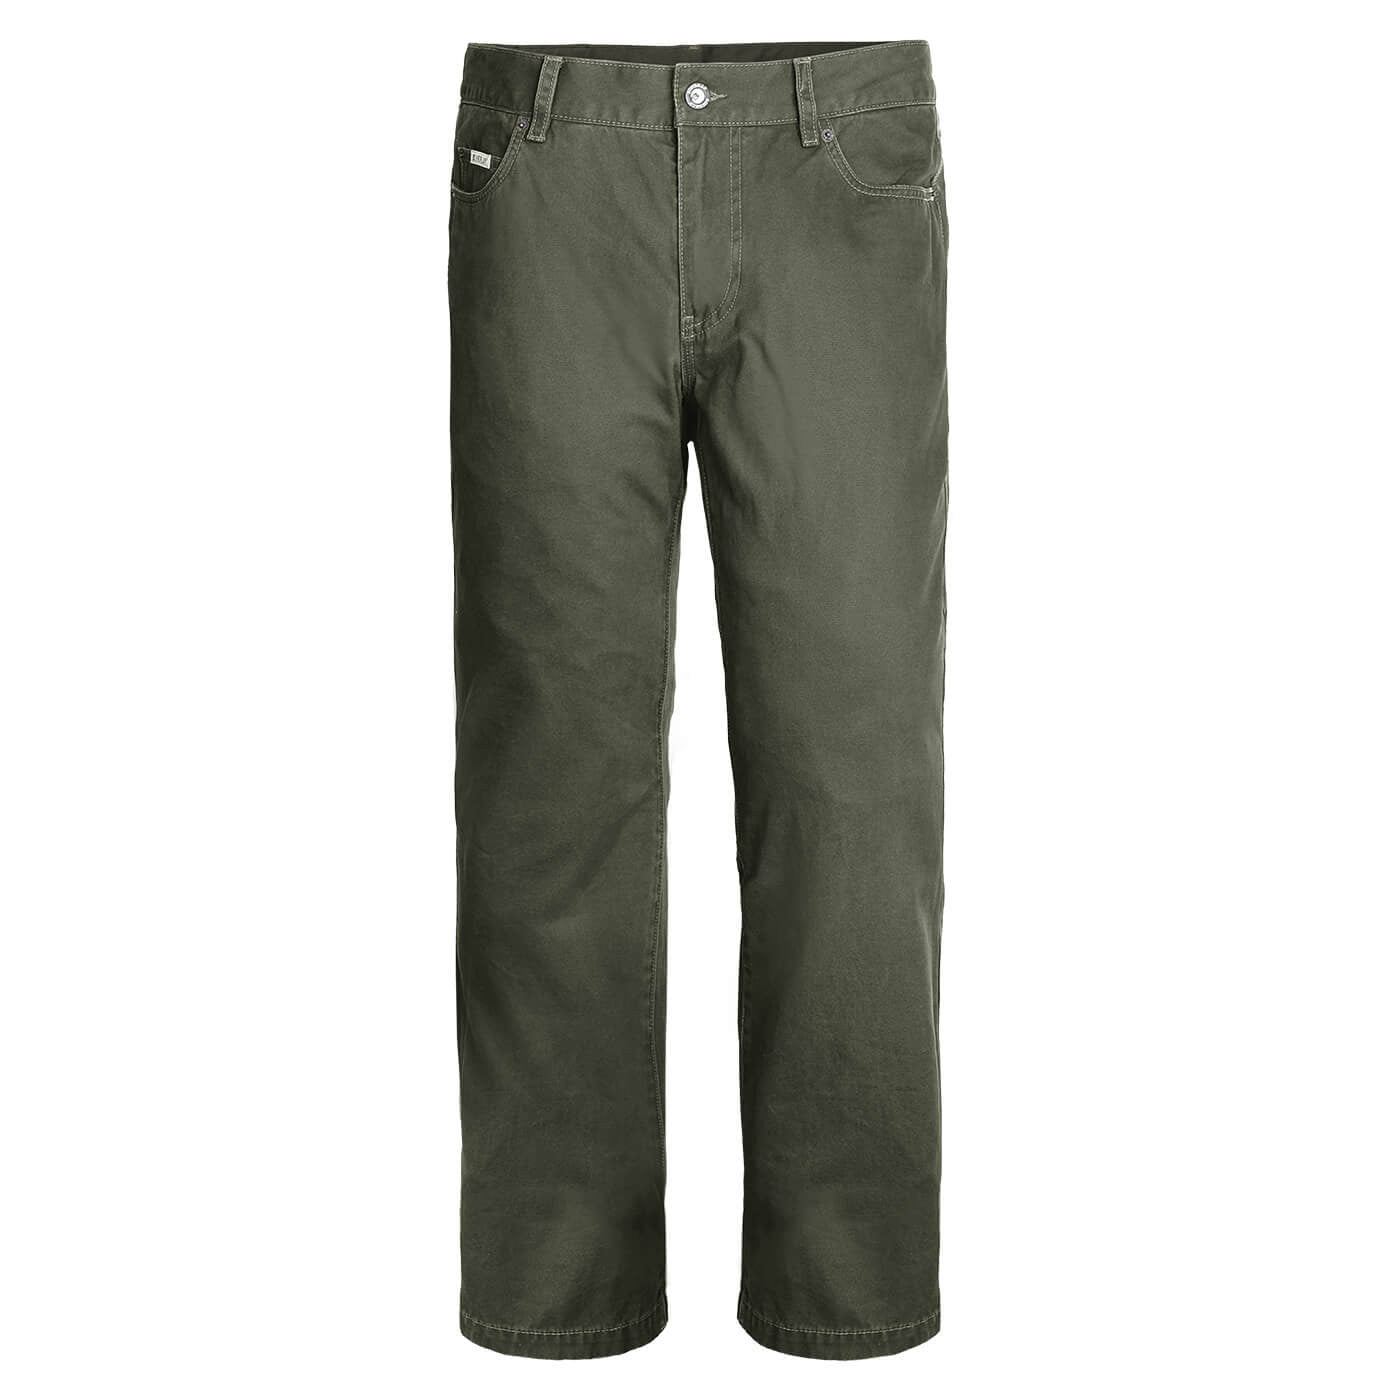 BUSHMANSHOP BASTROP MEN'S BROWN COTTON HEAVY DUTY PANTS